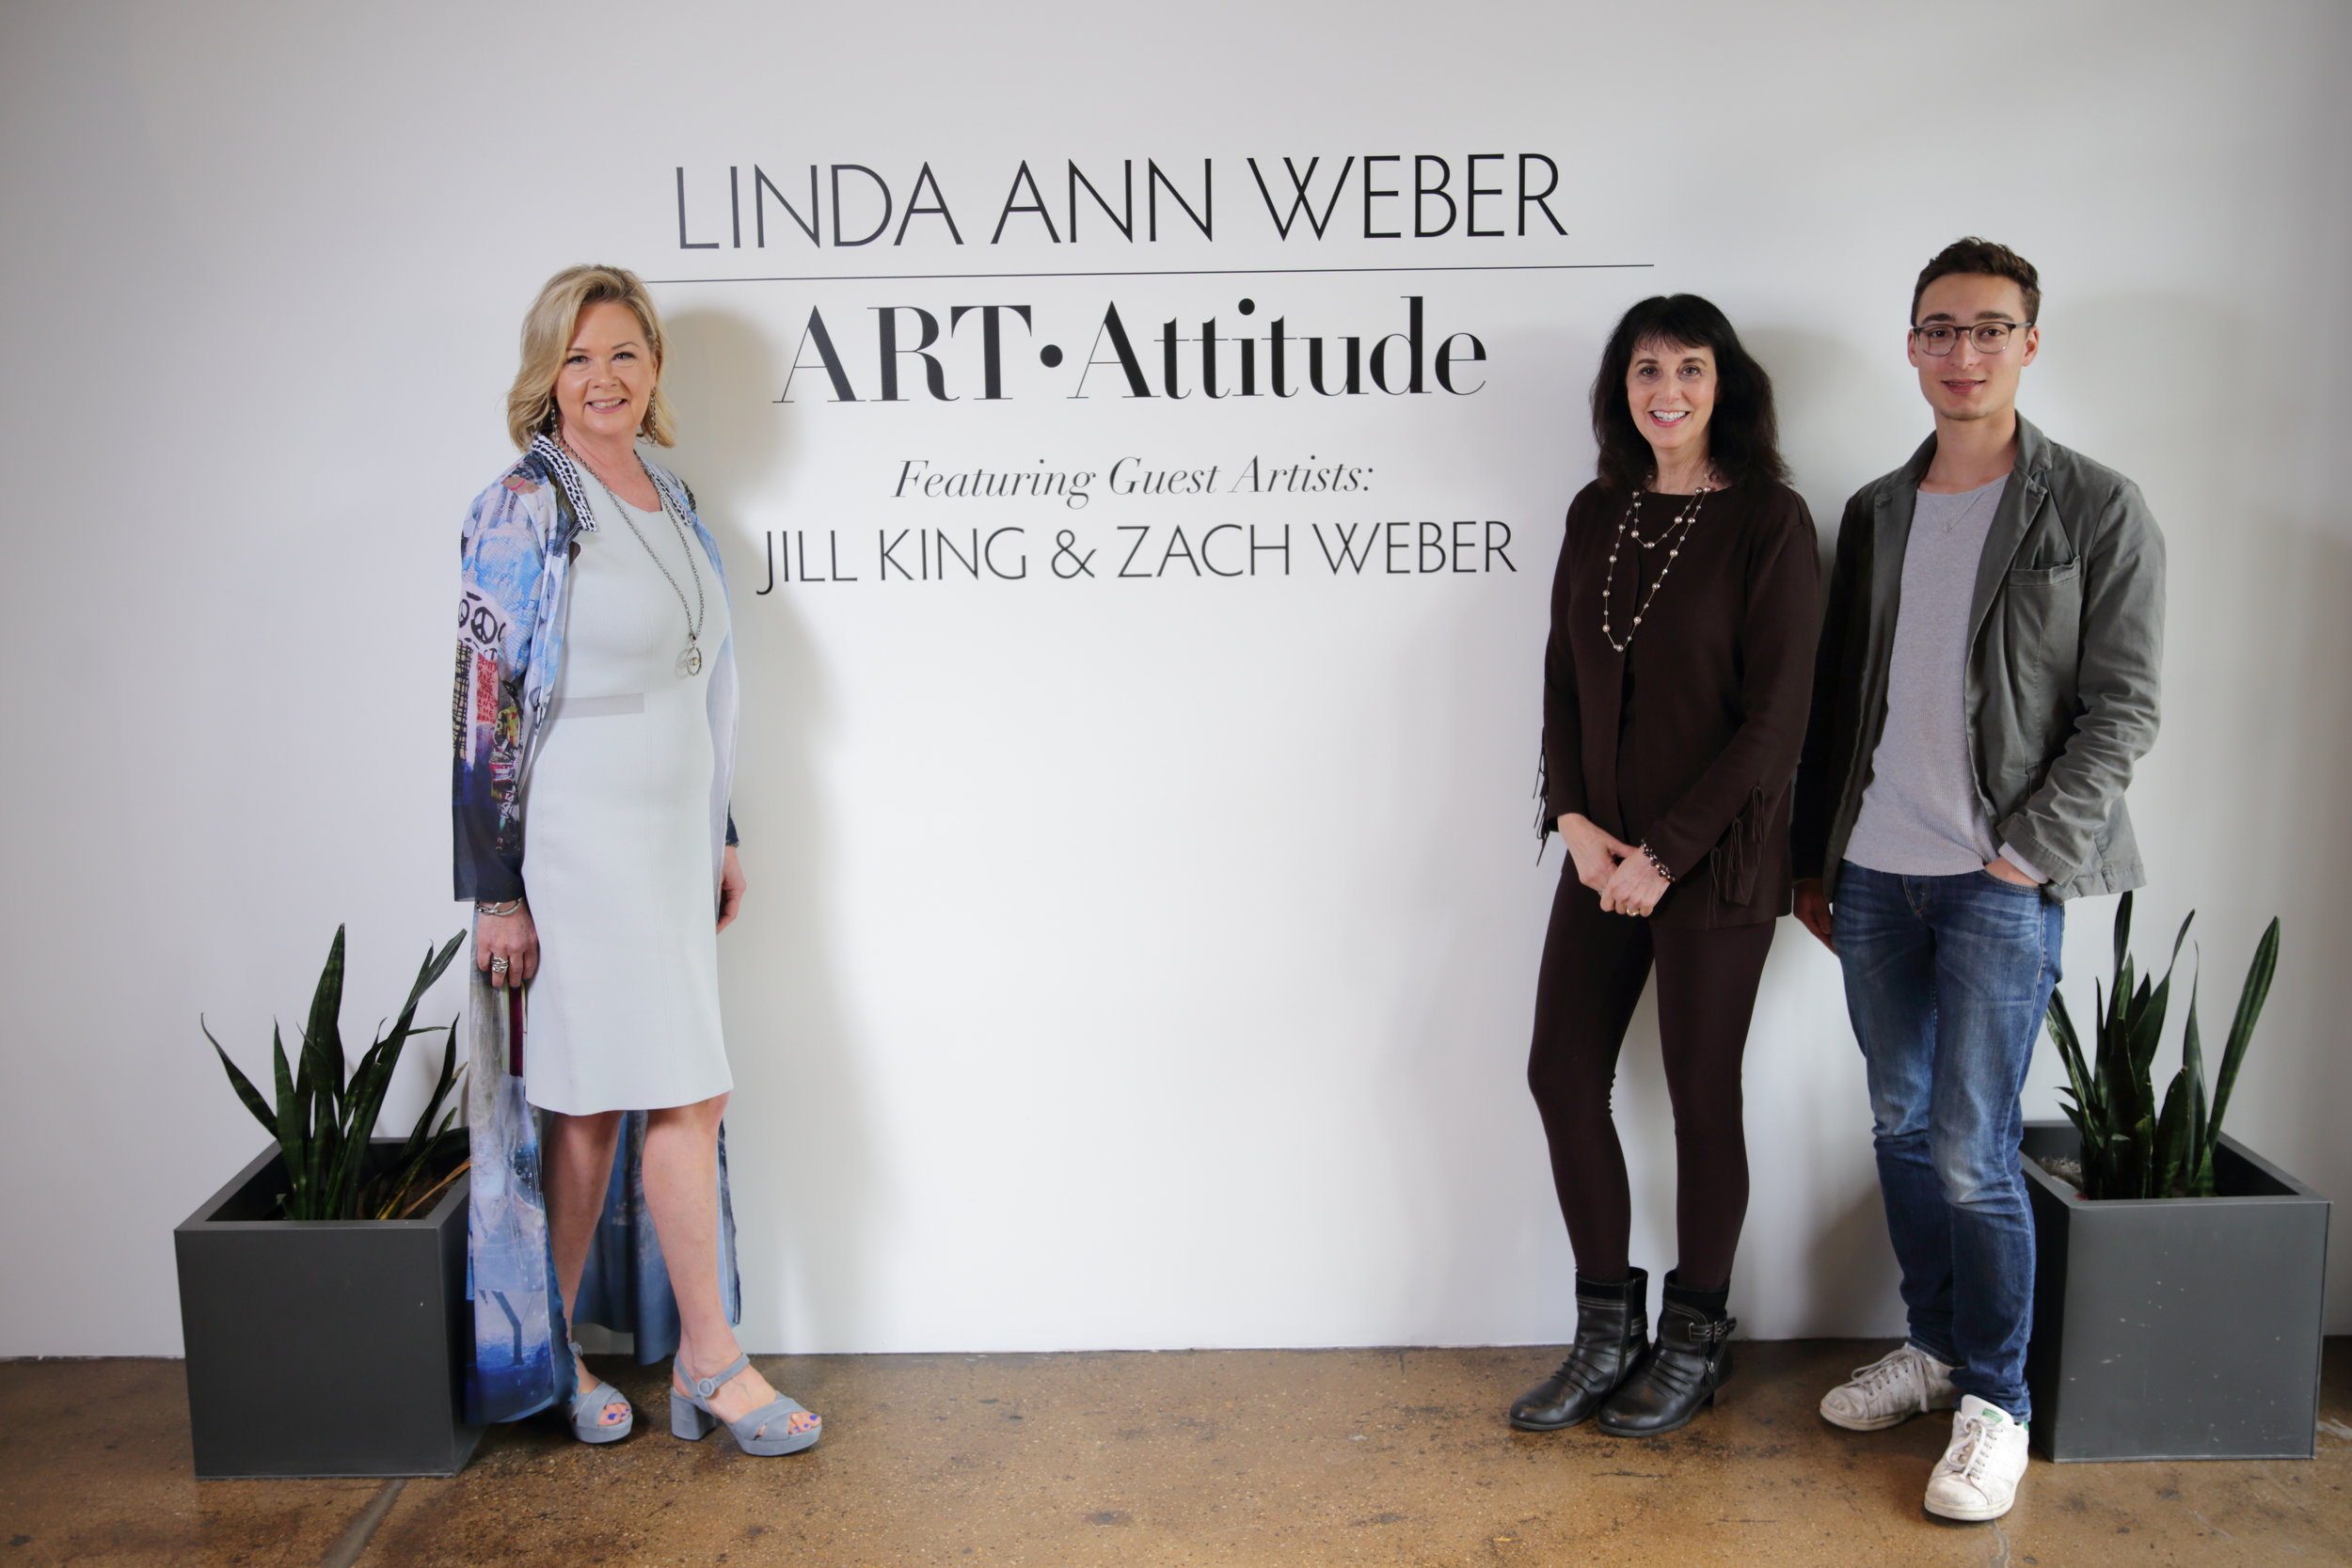 Linda Ann Weber with featured guest artists, Jill King and Zach Weber